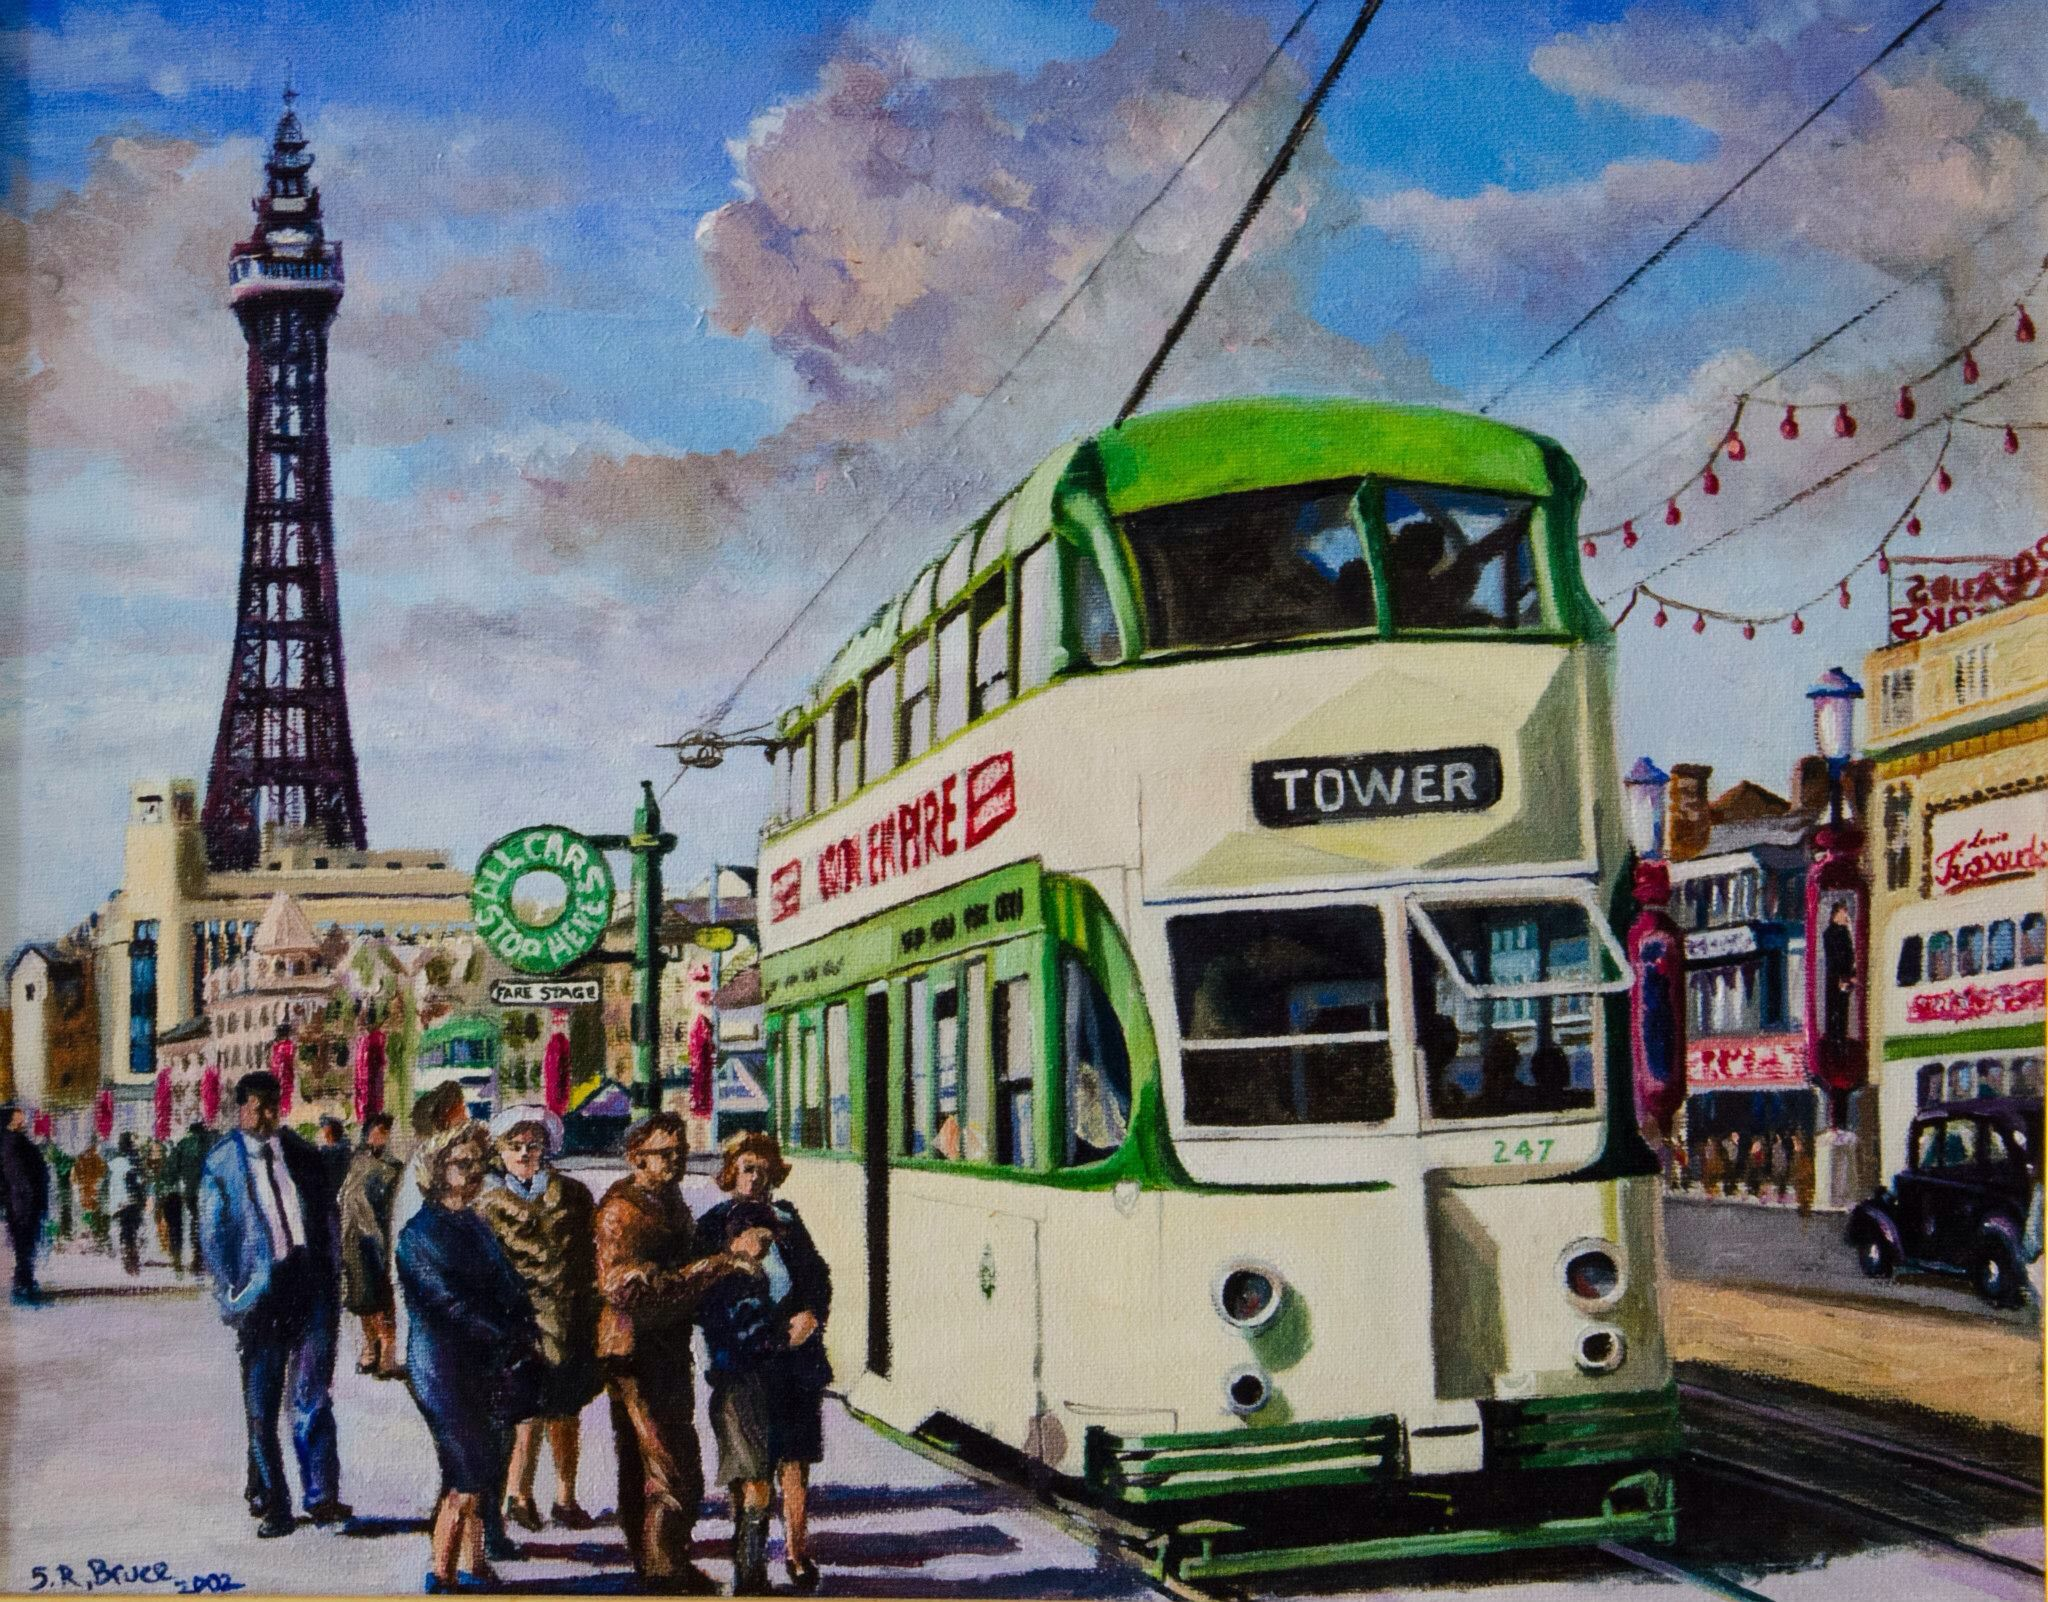 blackpool tram and tower 1963 by steven robert bruce oil on canvas